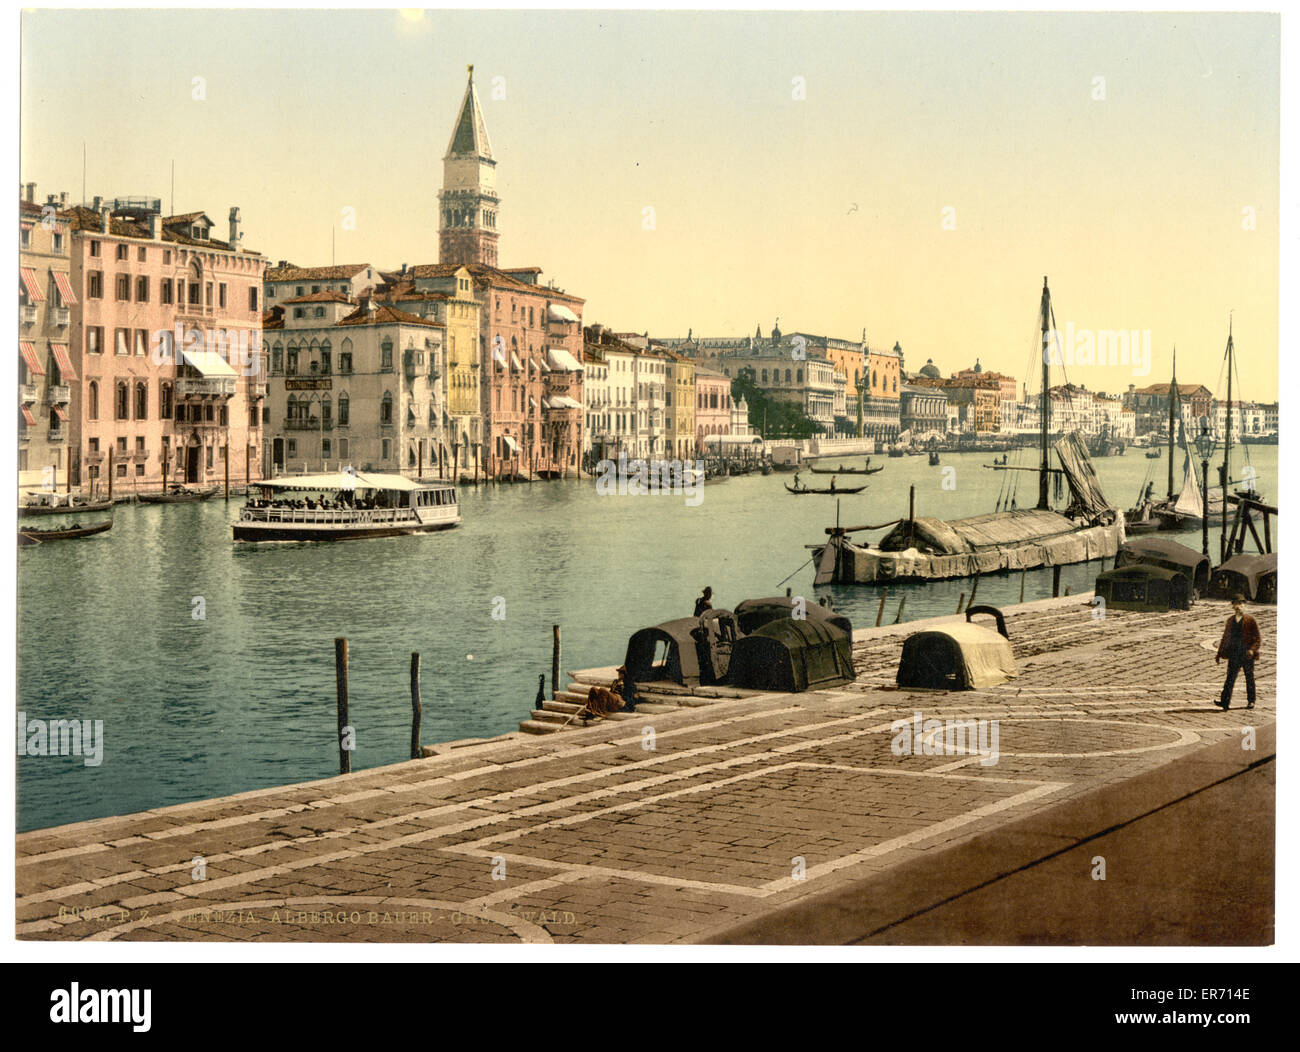 Hotel Bauer Grunewald, Venice, Italy. Date between ca. 1890 and ca. 1900. - Stock Image